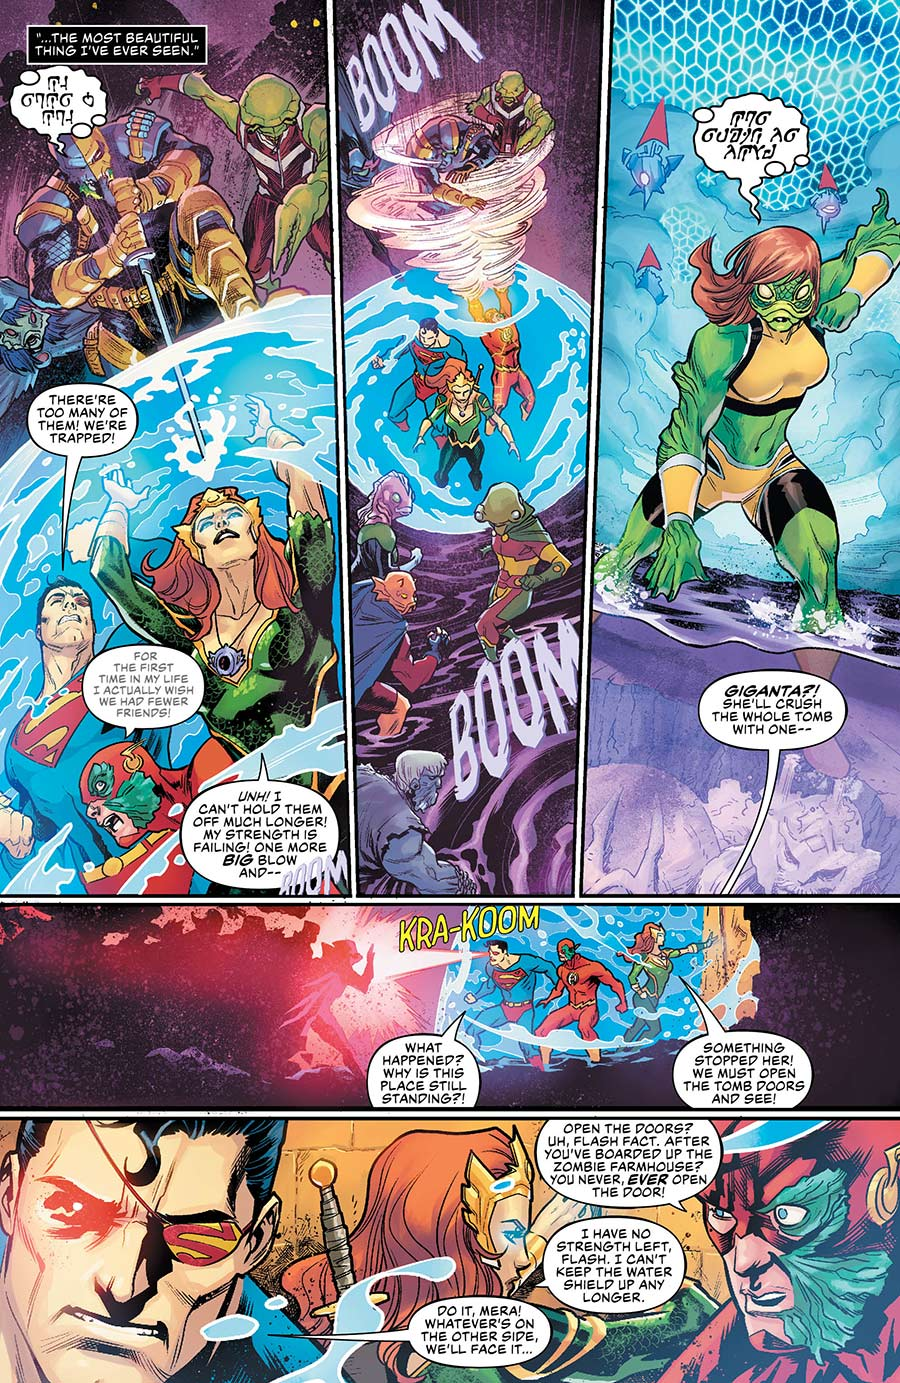 Aquaman Drowned Earth - 1-4 - DC Comics News